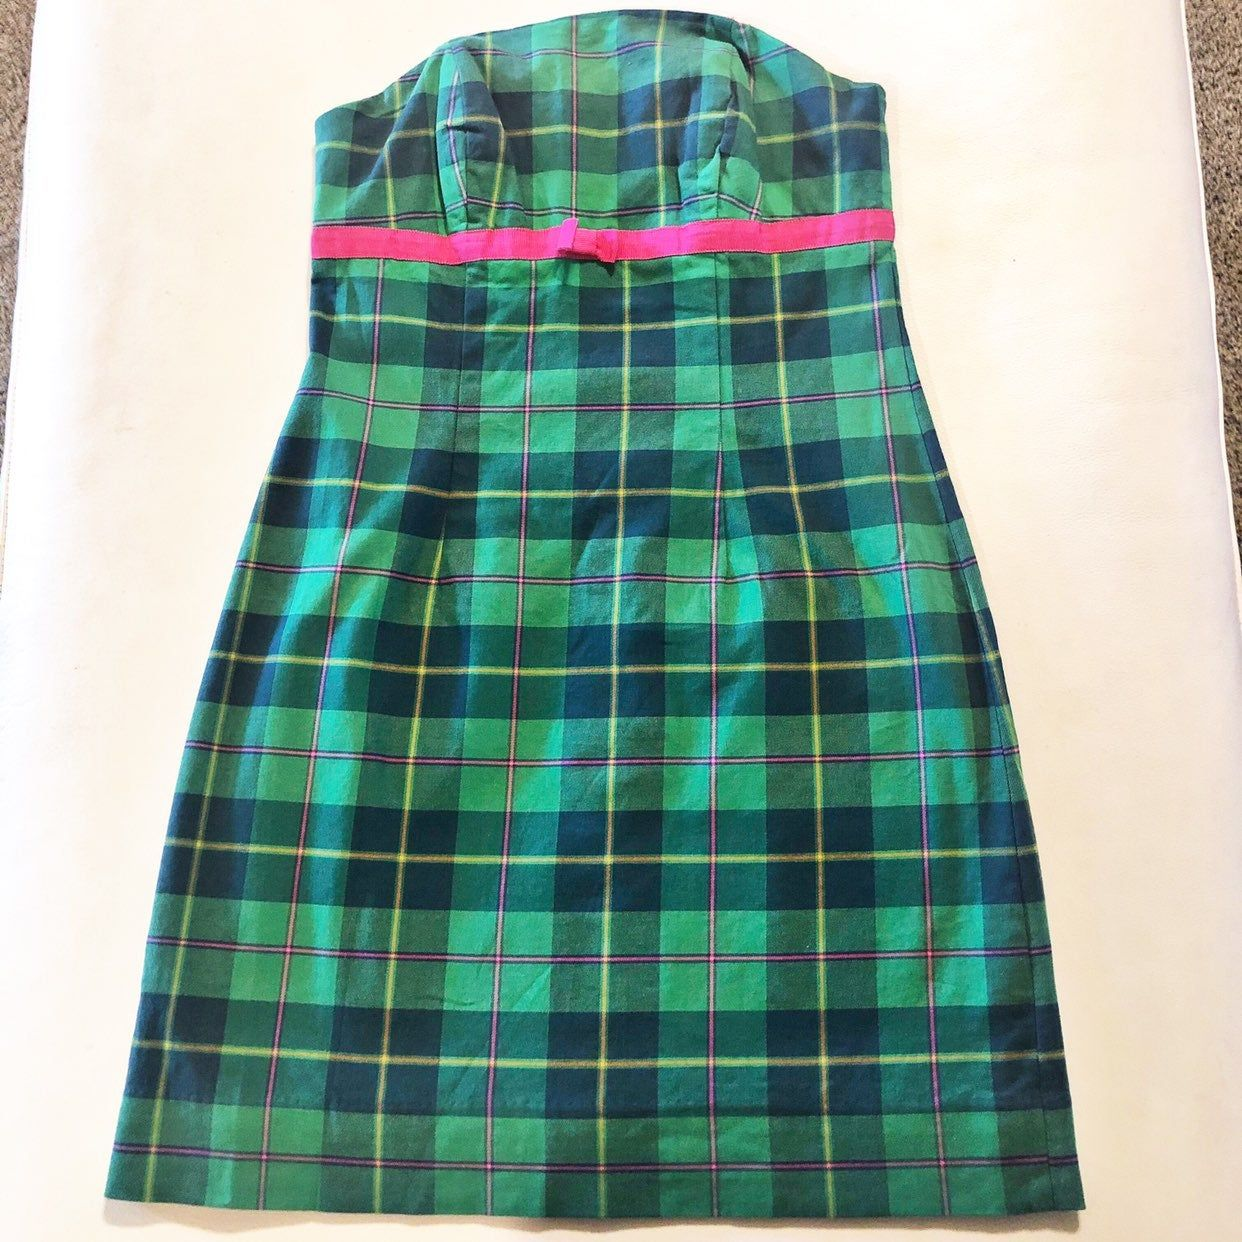 Strapless Green Plaid With Pink Ribbon Detail Empire Waist Bodice Has Boning For A Better Fit 97 Cotton 3 Spandex Fabric Has Plaid Dress Womens Dresses Plaid [ 1242 x 1242 Pixel ]